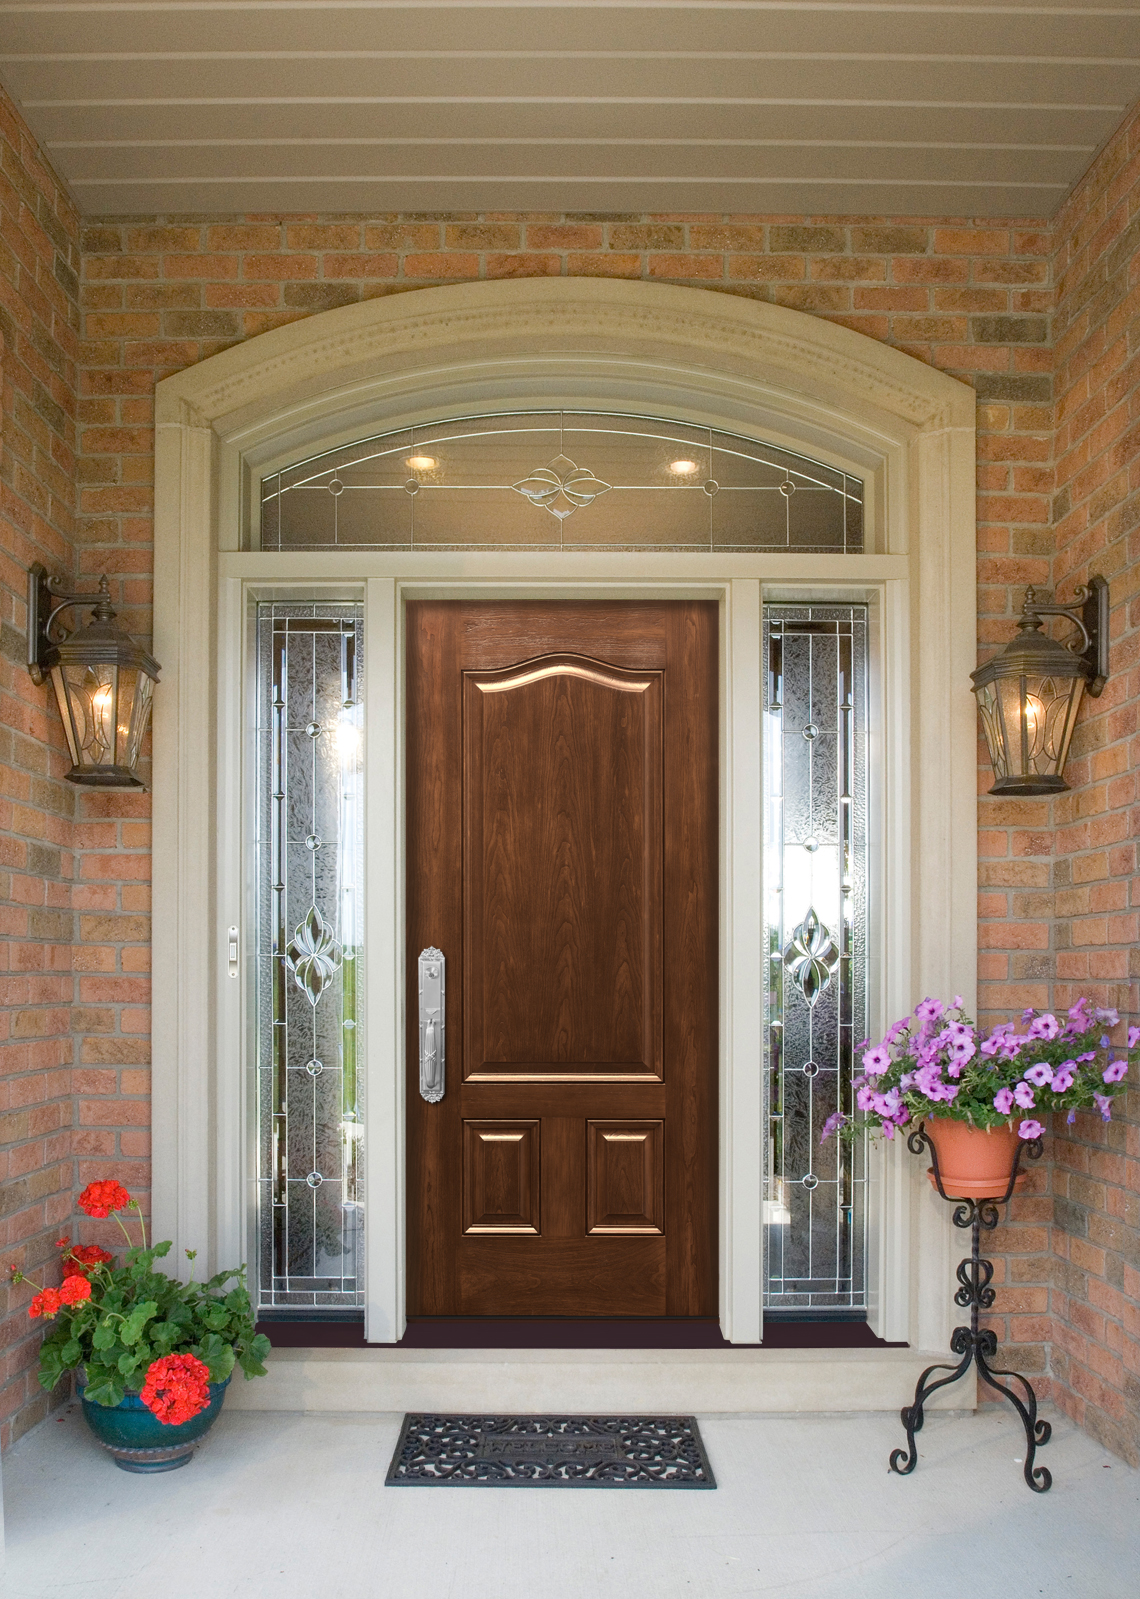 1599 #67452A Entry Doors By Provia Cunningham Door & Window image Stainable Fiberglass Entry Doors 40231140